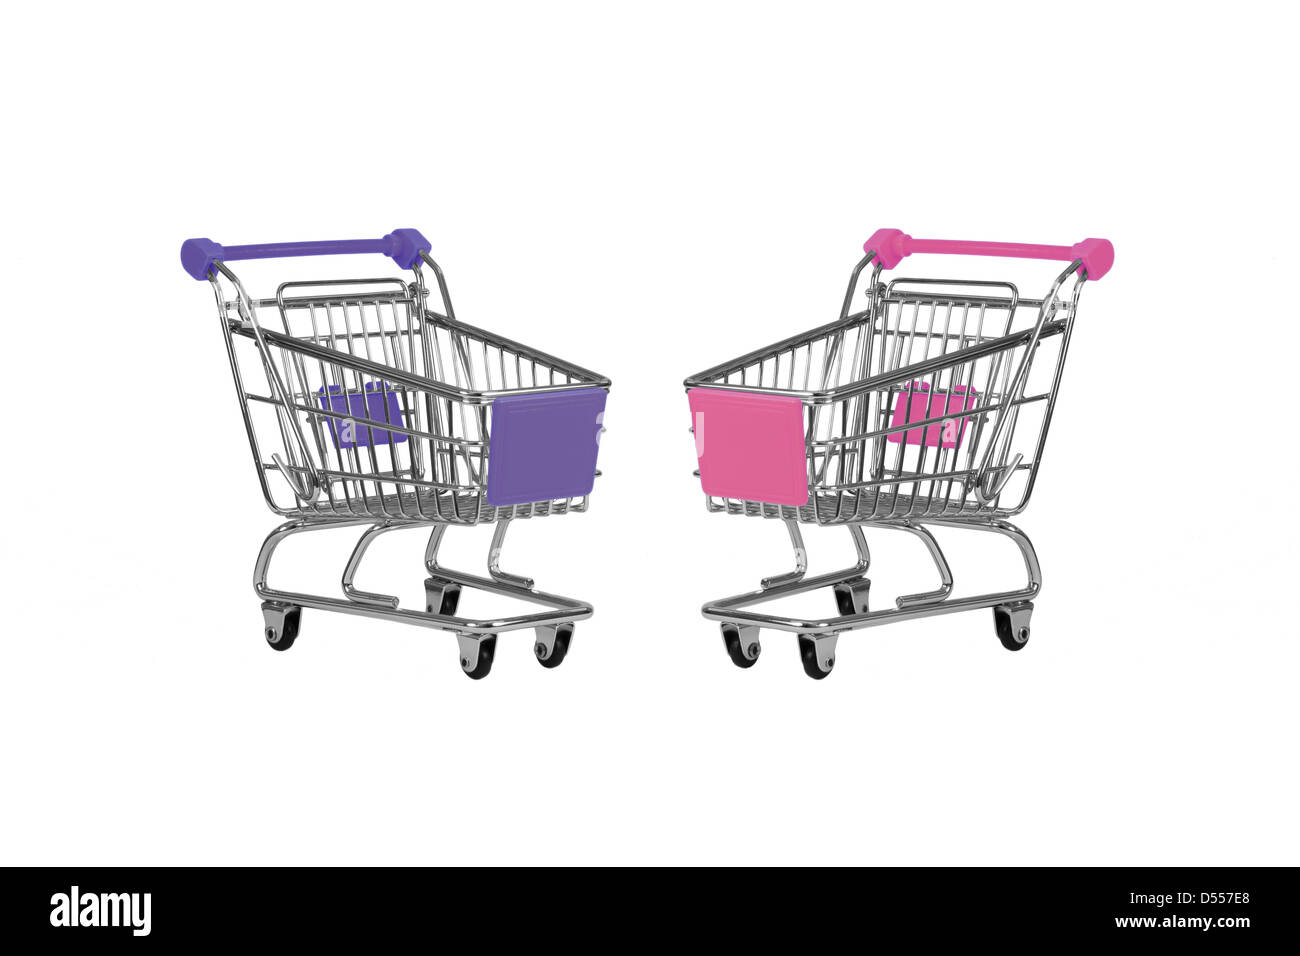 Two shopping carts observing isolated over white - Stock Image